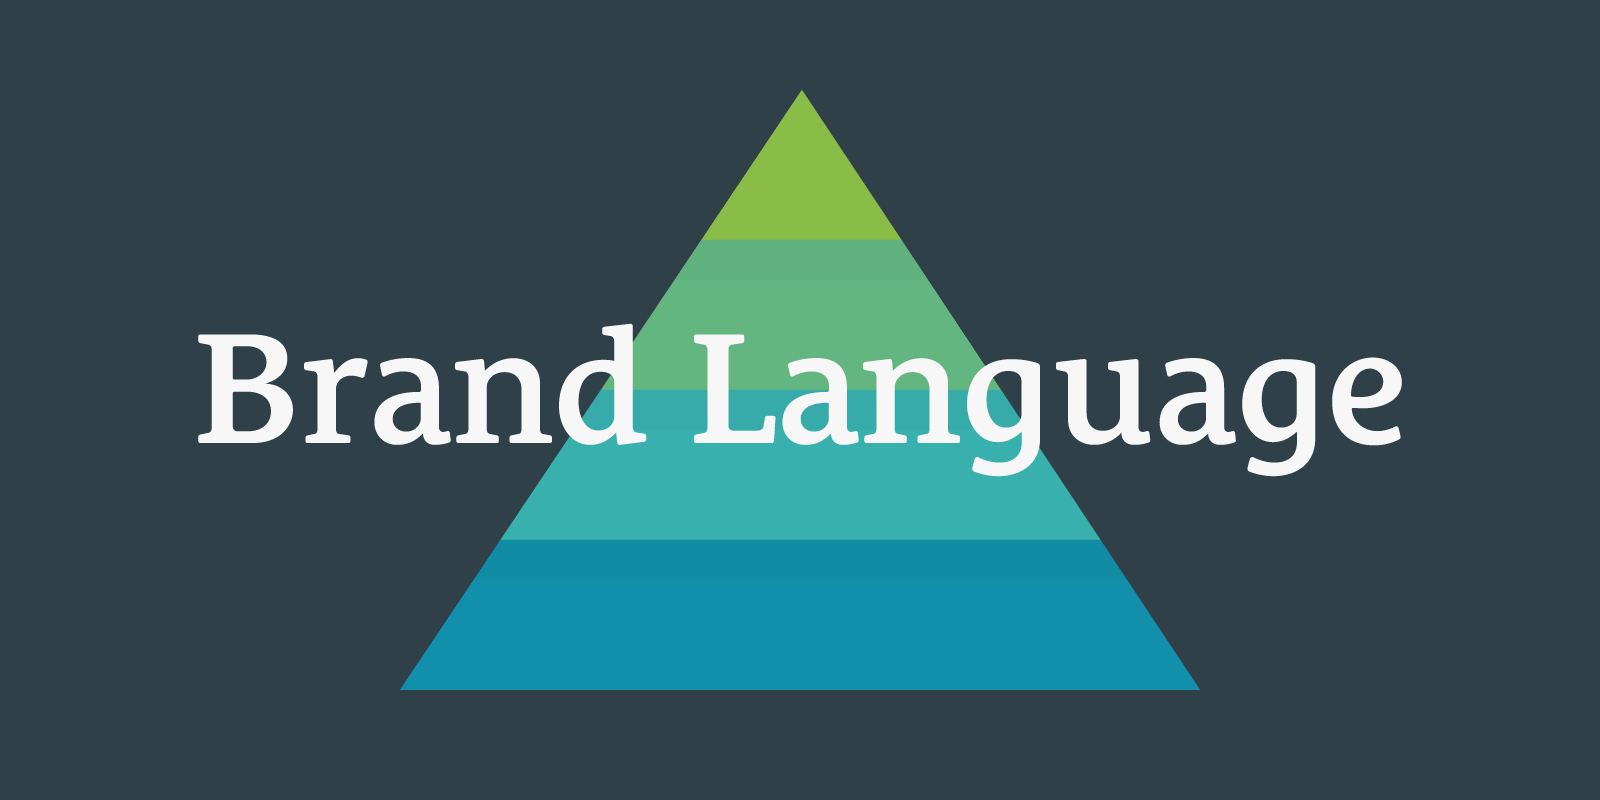 The Four Tiers of Brand Language